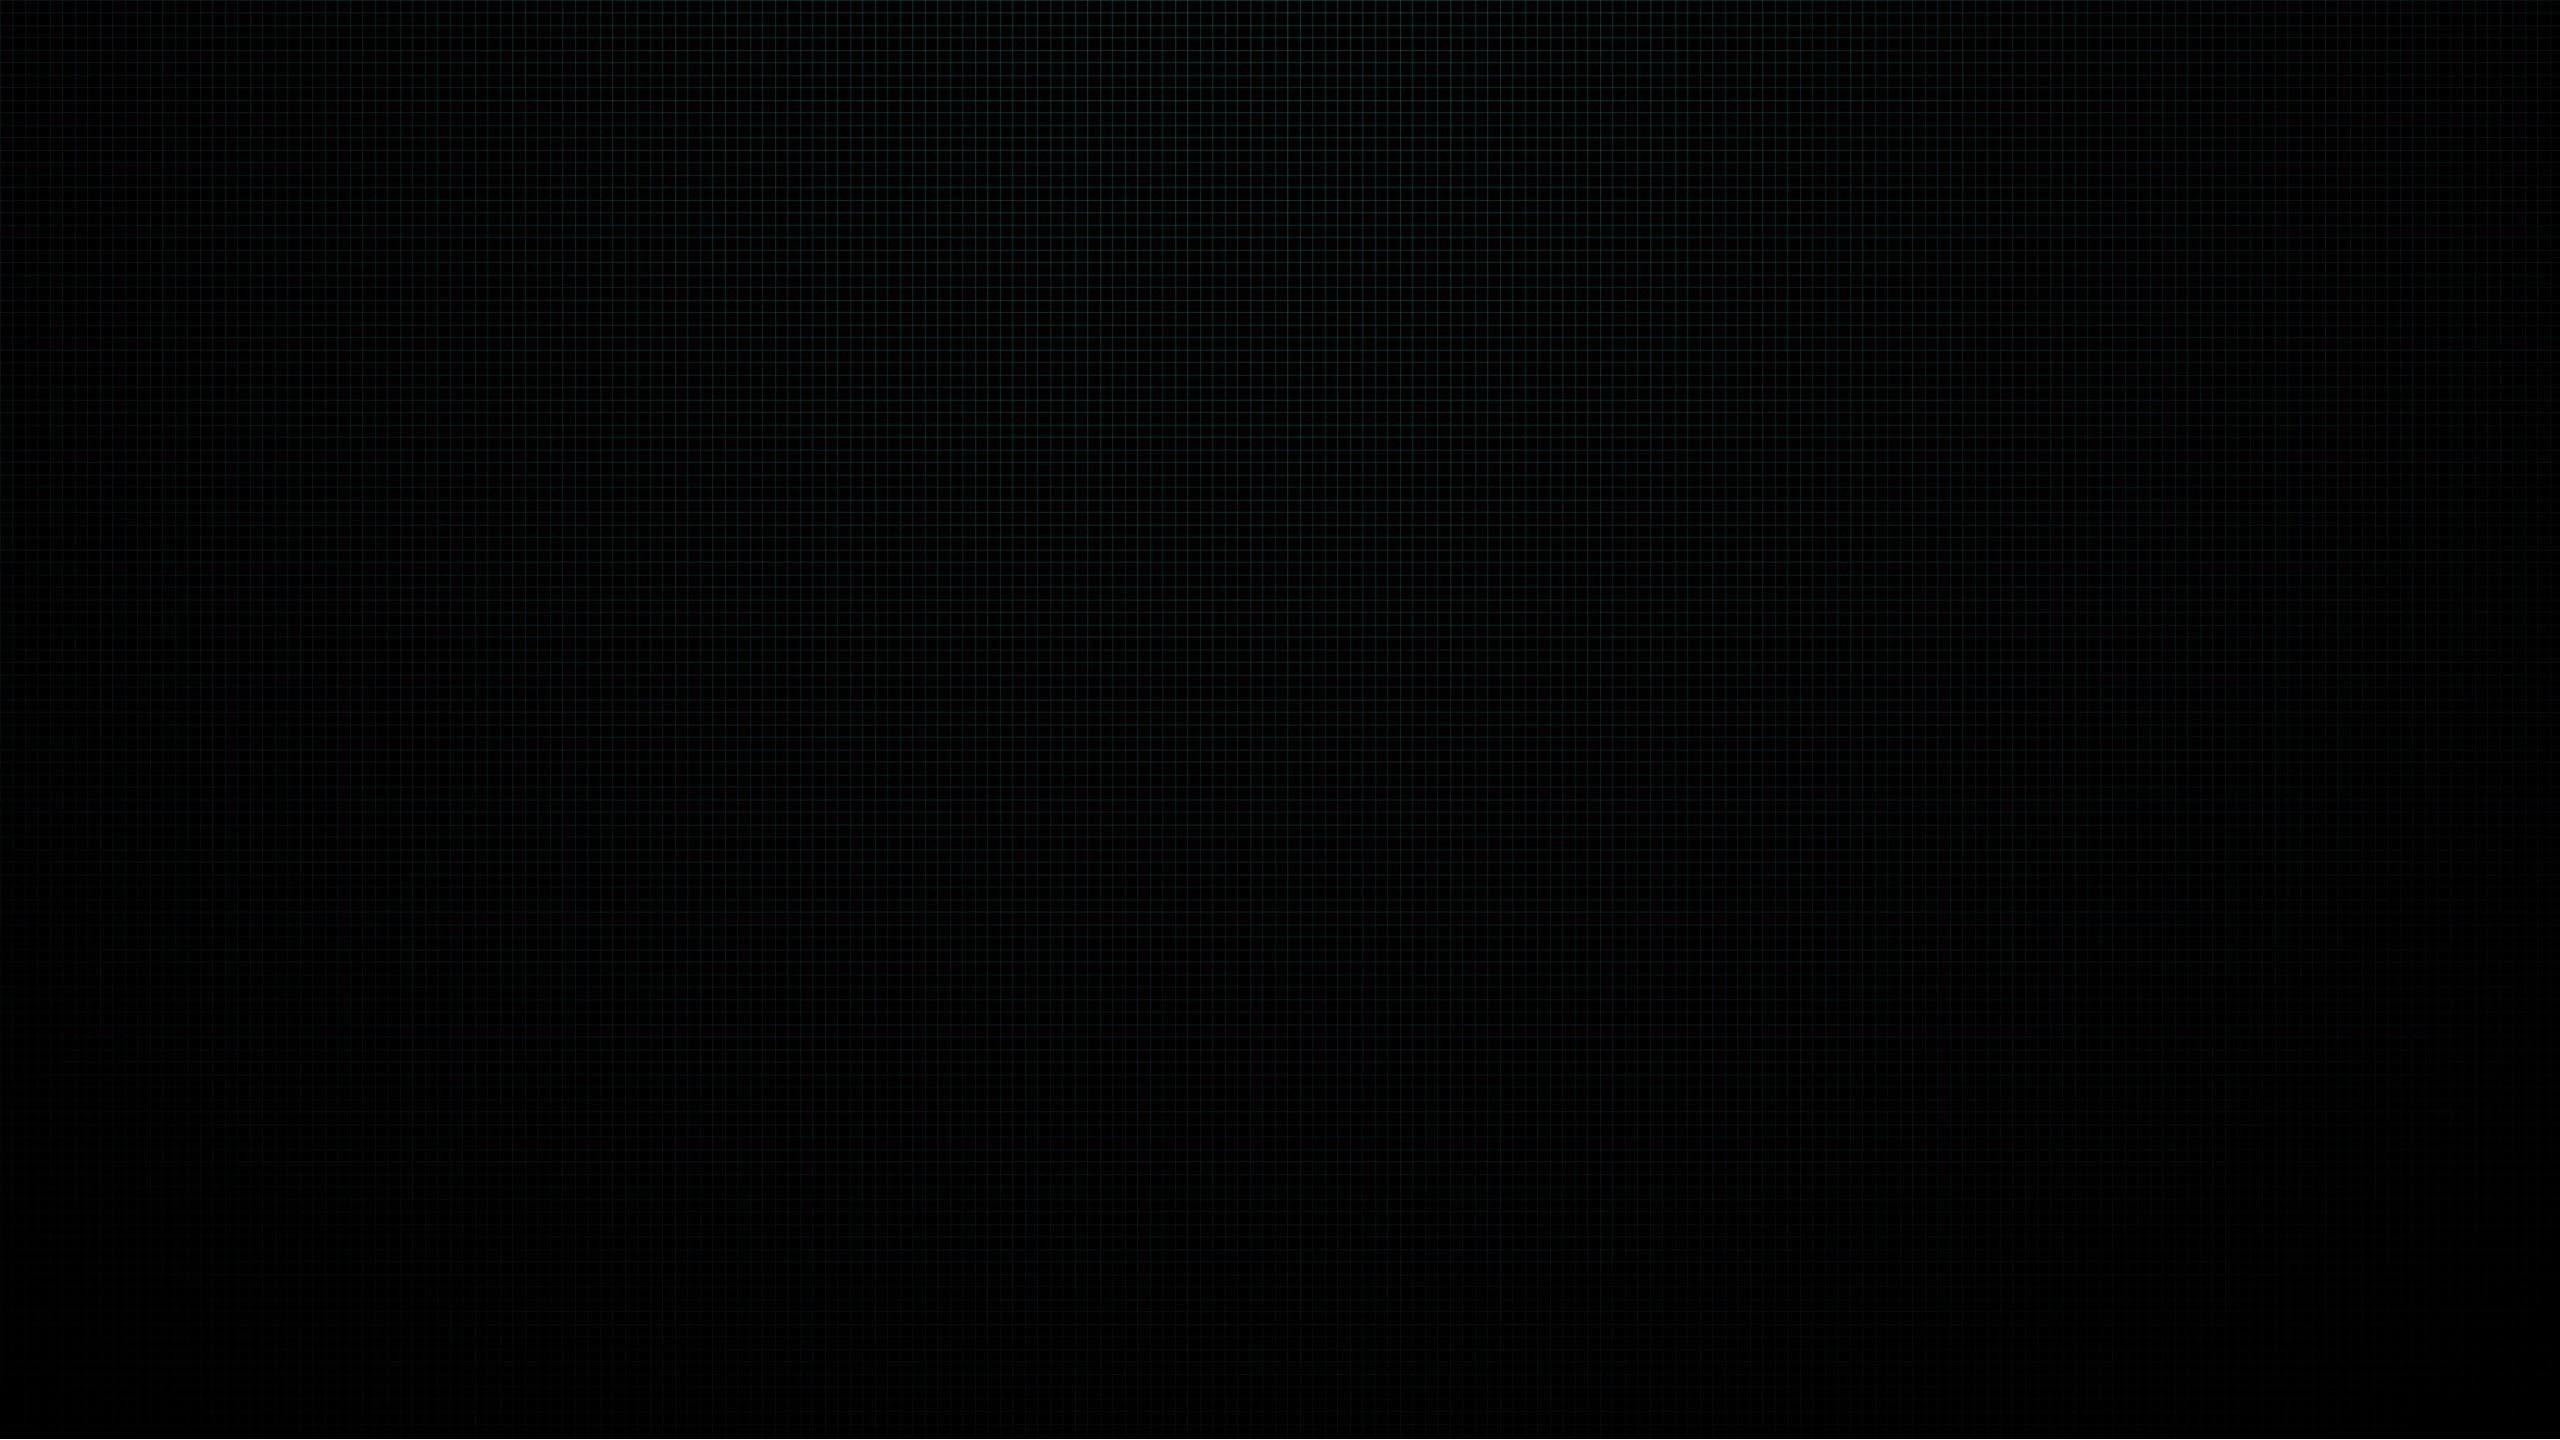 High Quality All Blacks Wallpaper 2018 (64+ images)